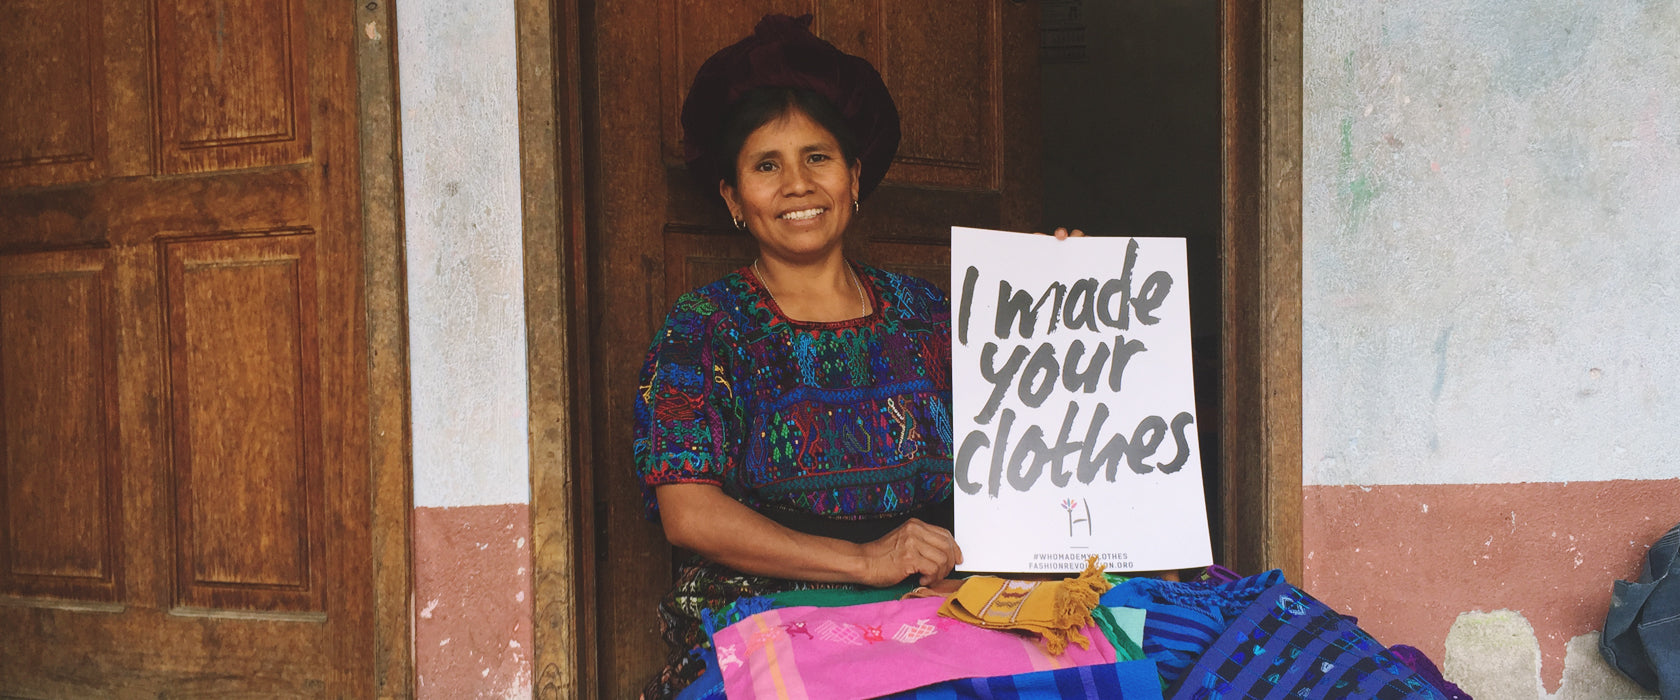 Ethical Fashion, Guatemala, Artisan, Juana, female empowerment, ethical fashion brand, Hiptipico, fashion rev, who made my clothes